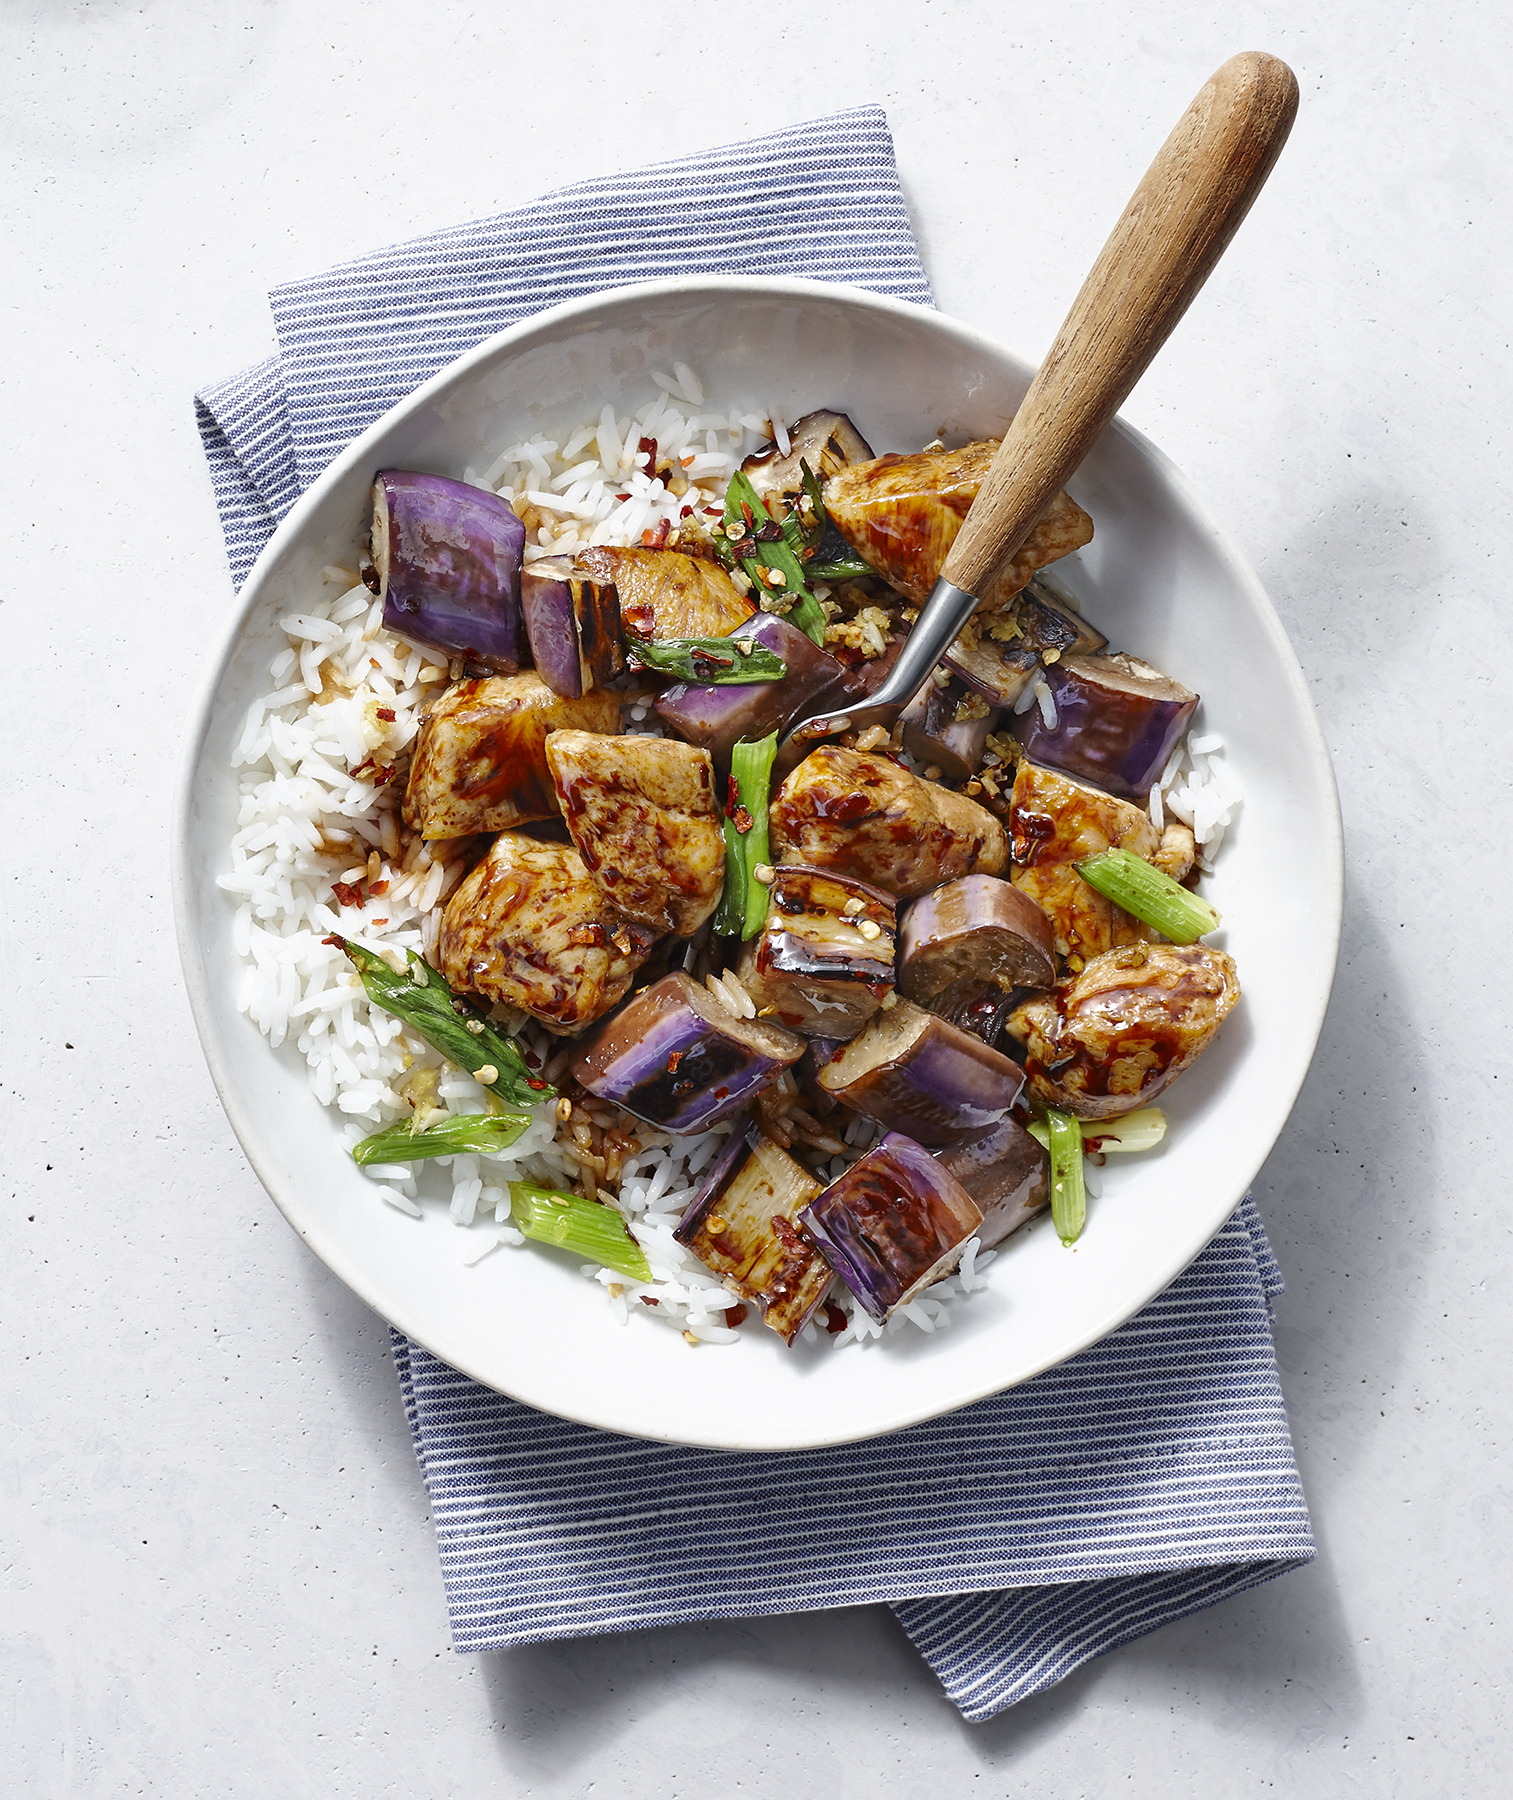 Spicy Chicken and Eggplant Stir-Fry